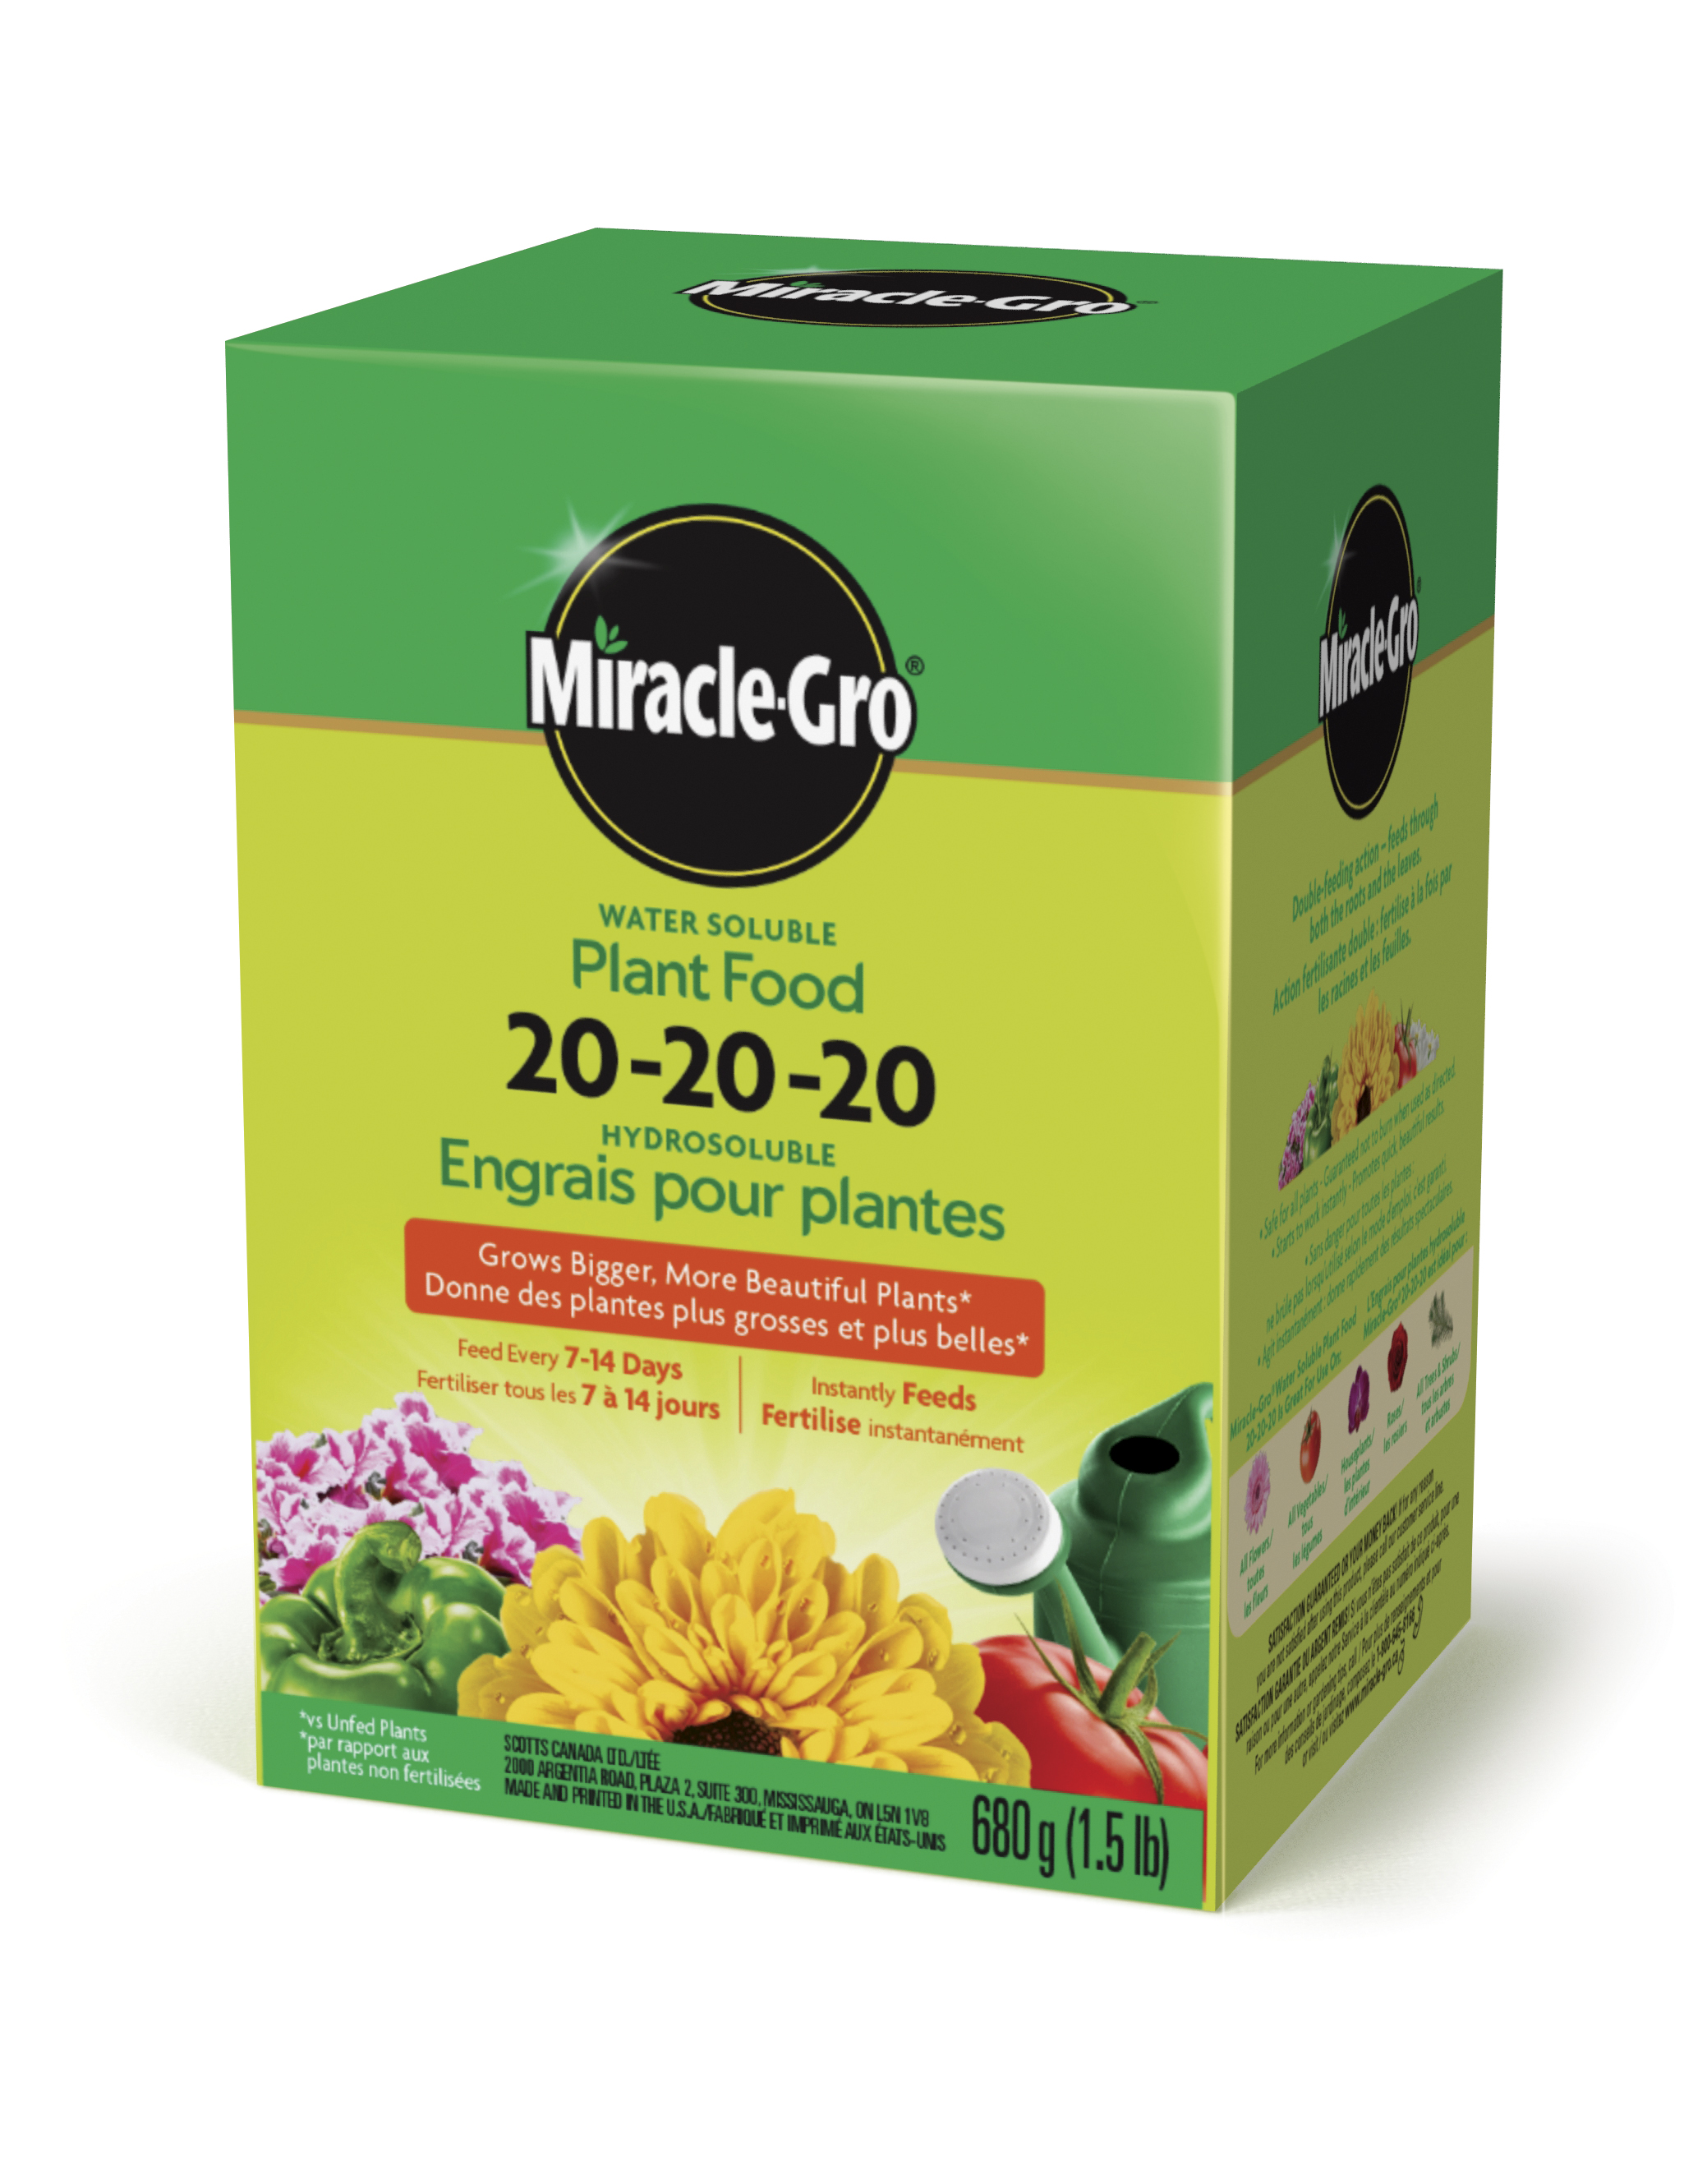 Miracle Gro Water Soluble Plant Food 20